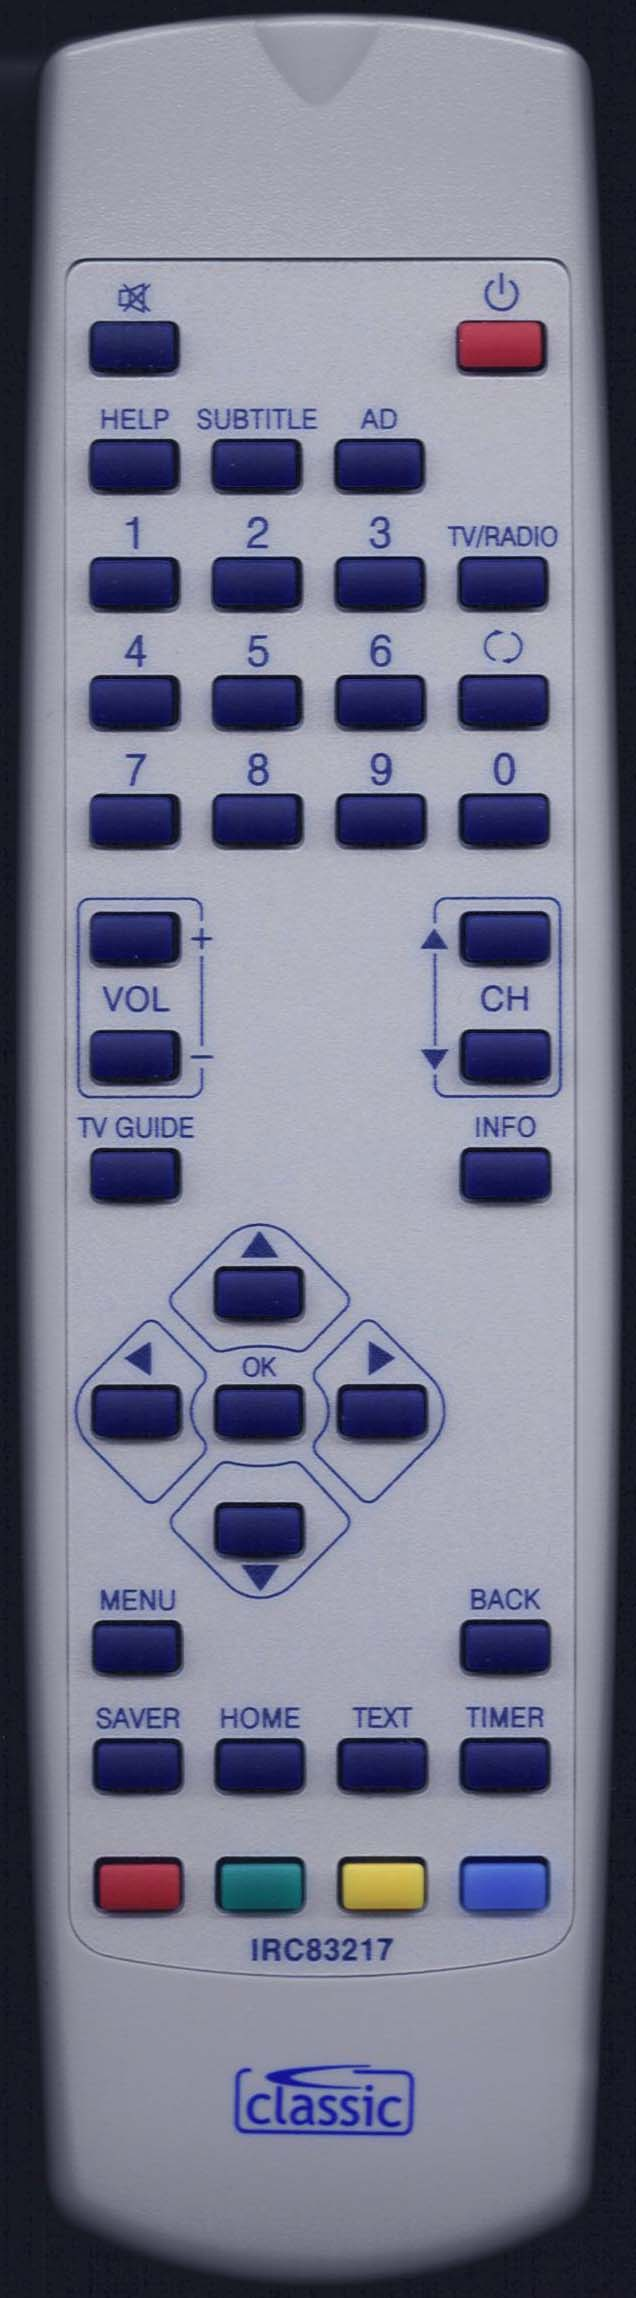 TVONICS MDR-250 Replacement Remote Control